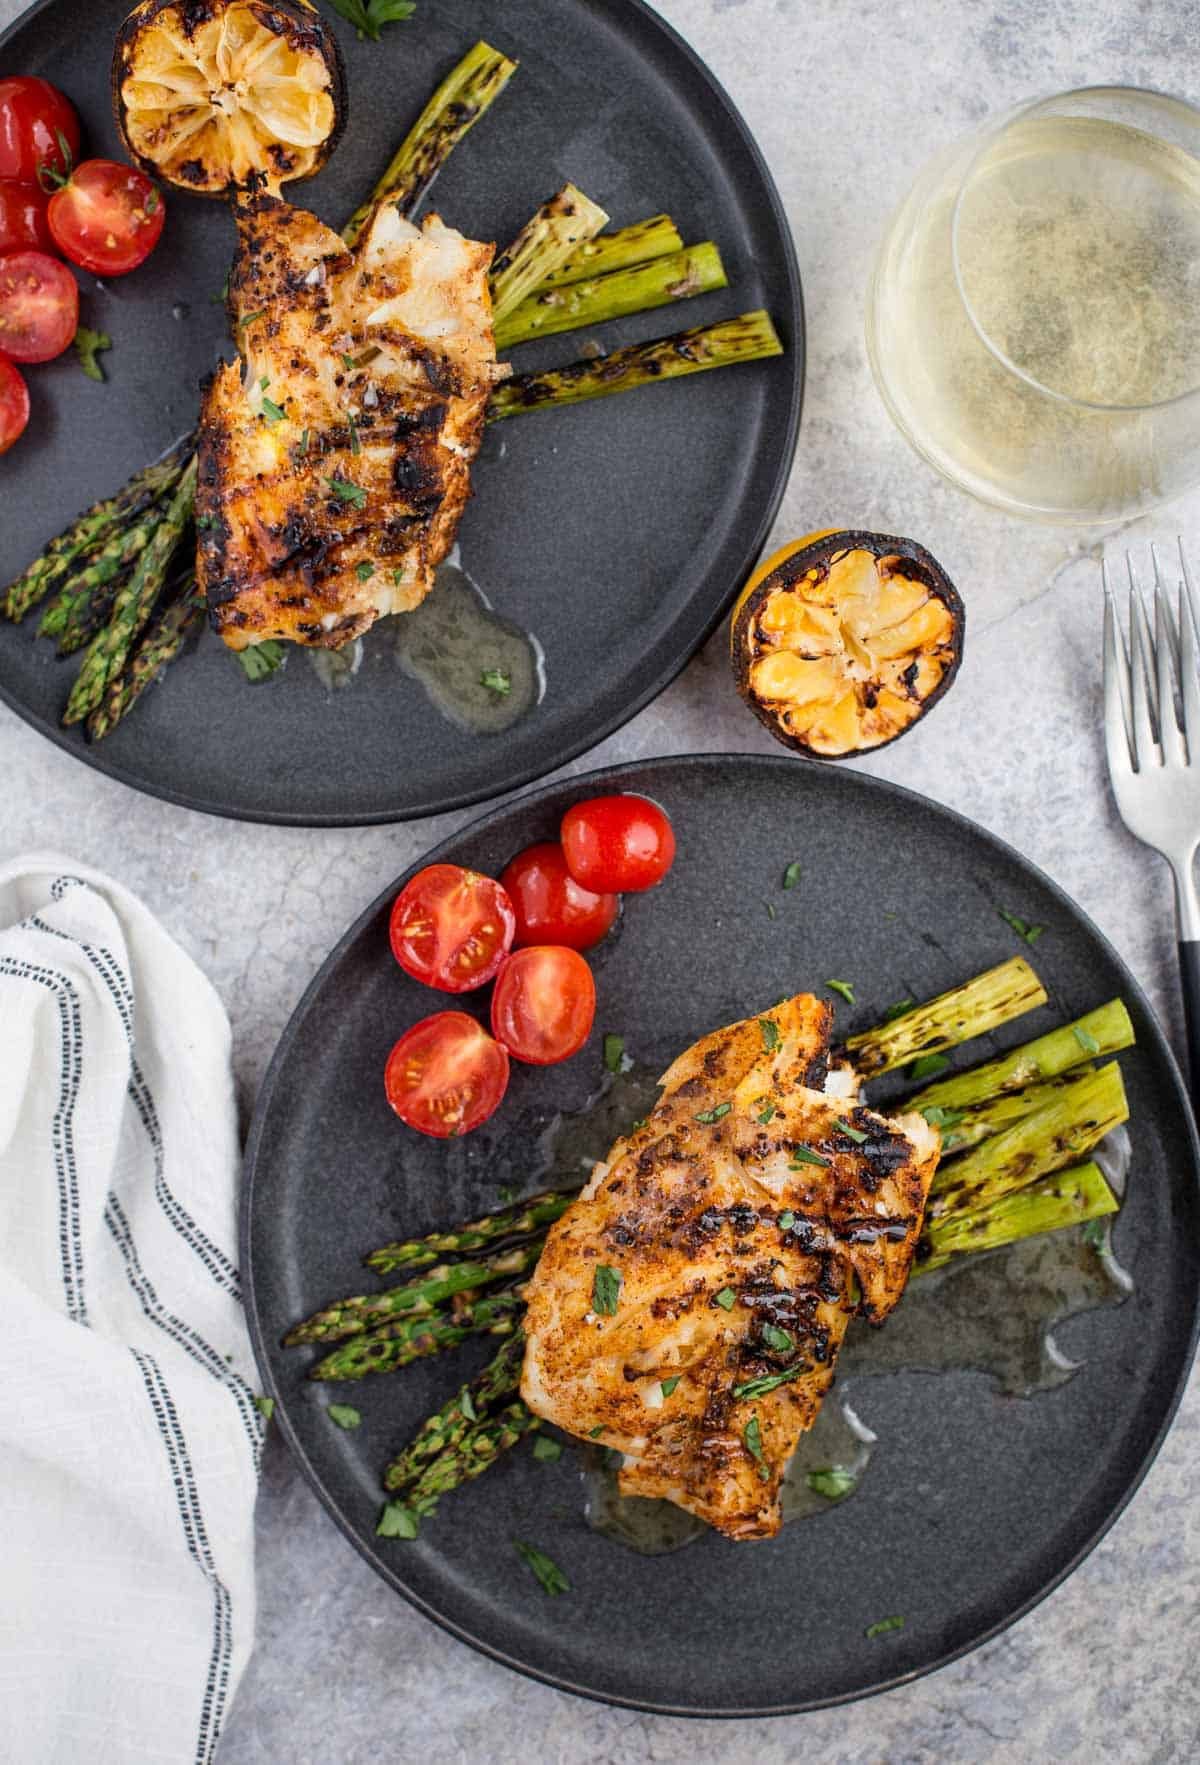 Two plates with grilled cod and a glass of white wine